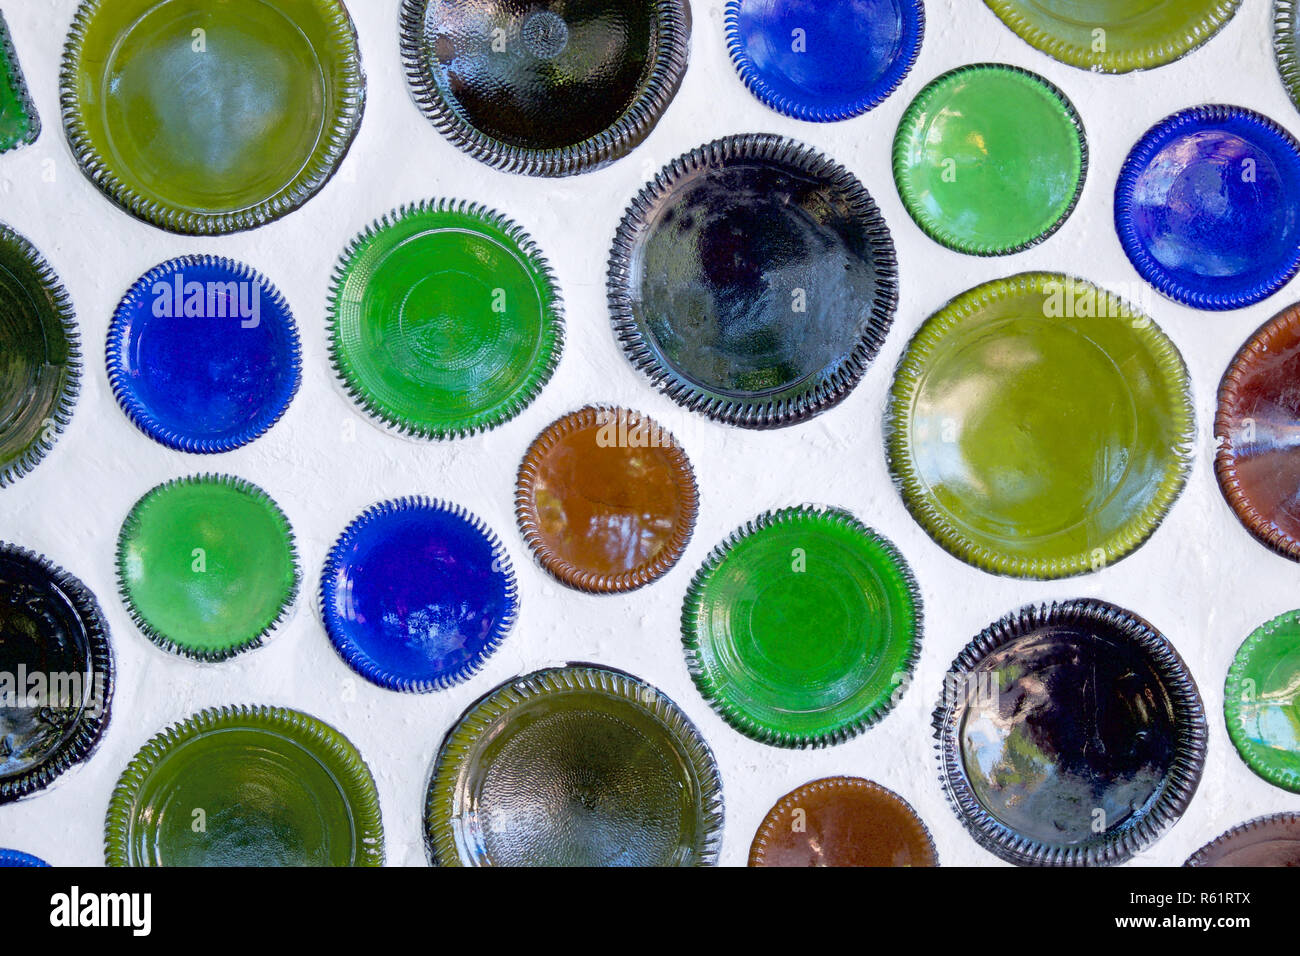 Fifty circular glass bottles have been reused as building materials and the bottom of the bottles are built into a white wall, the bottles have just t - Stock Image